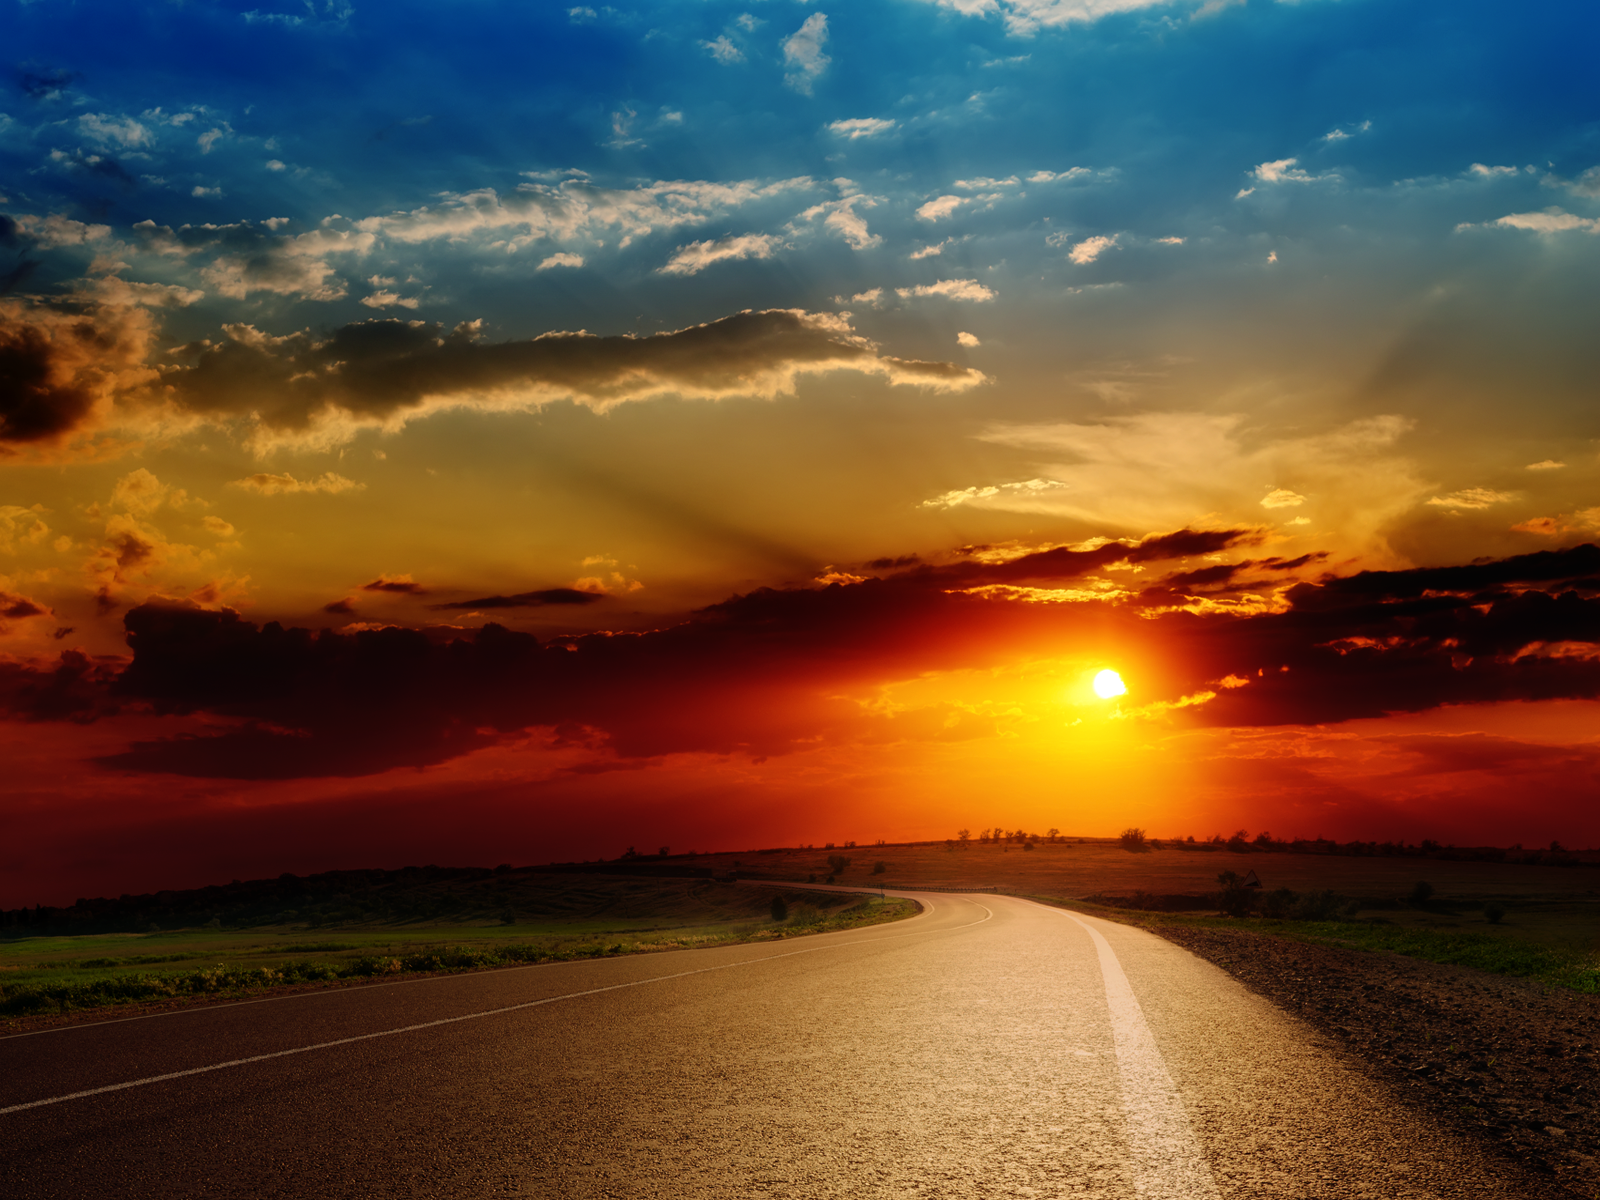 Sunset Road Trip America wallpaper Conservatives Conspiracy 1600x1200